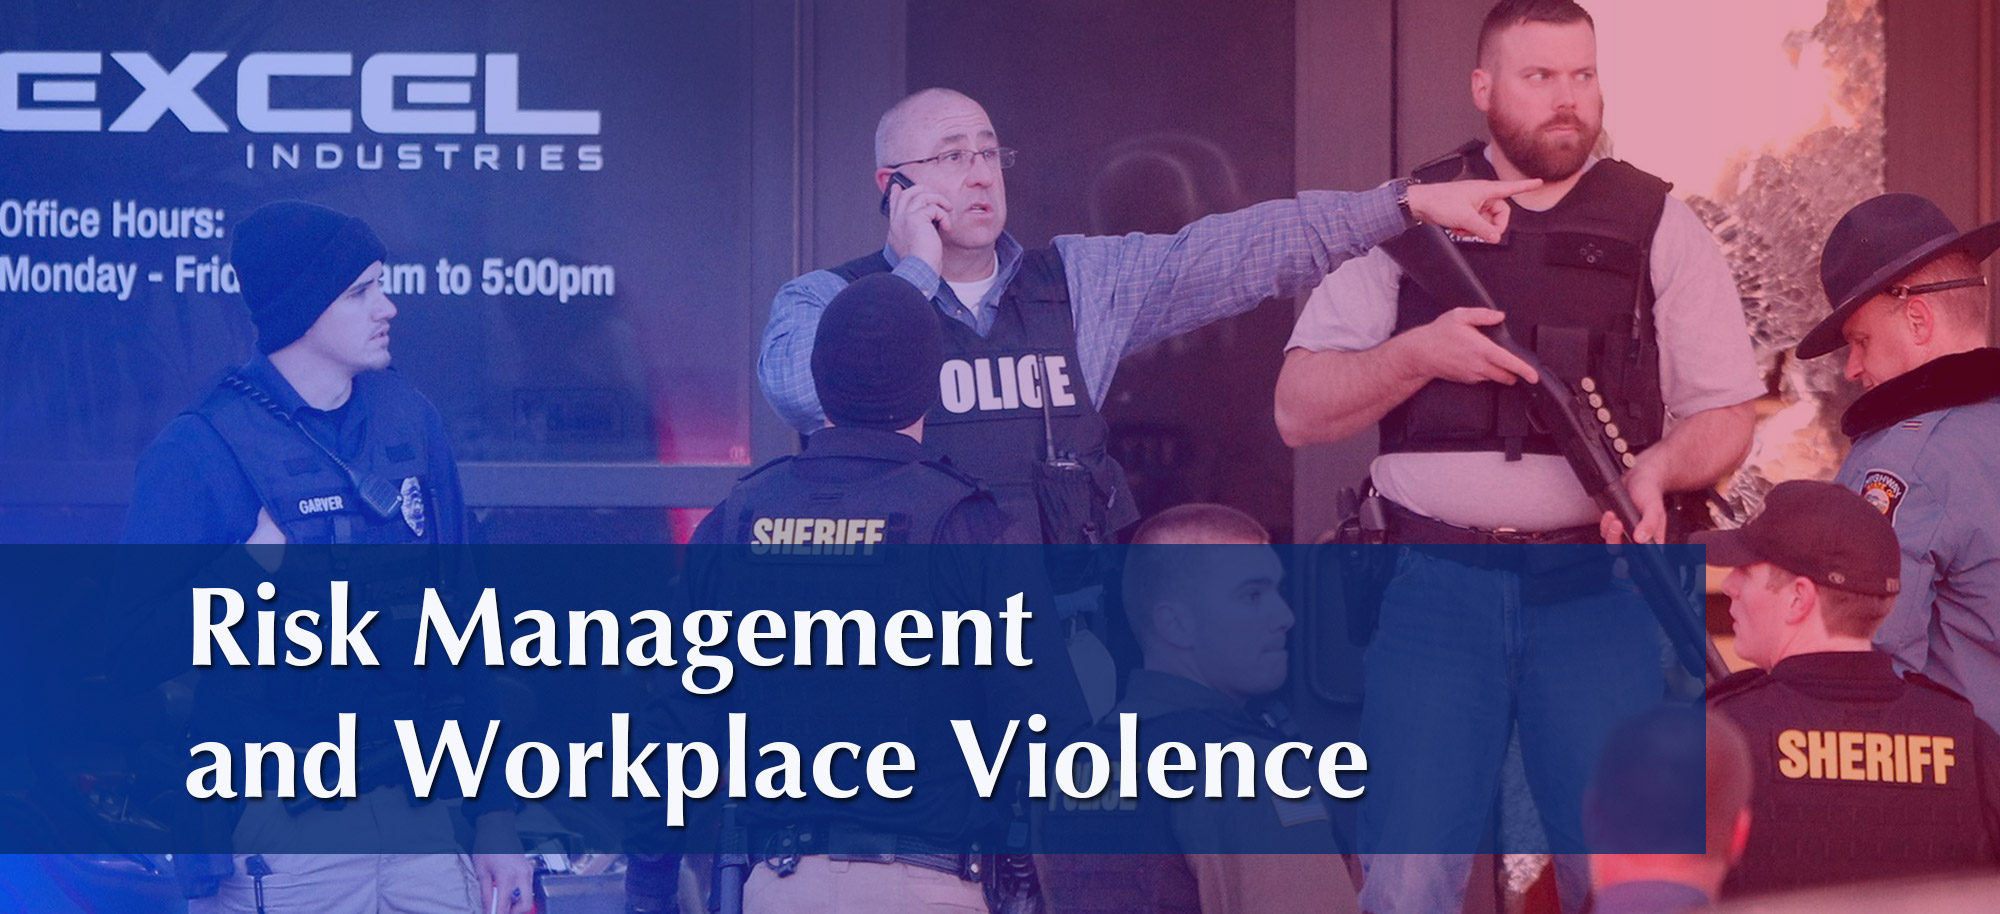 Risk Management and Workplace Violence